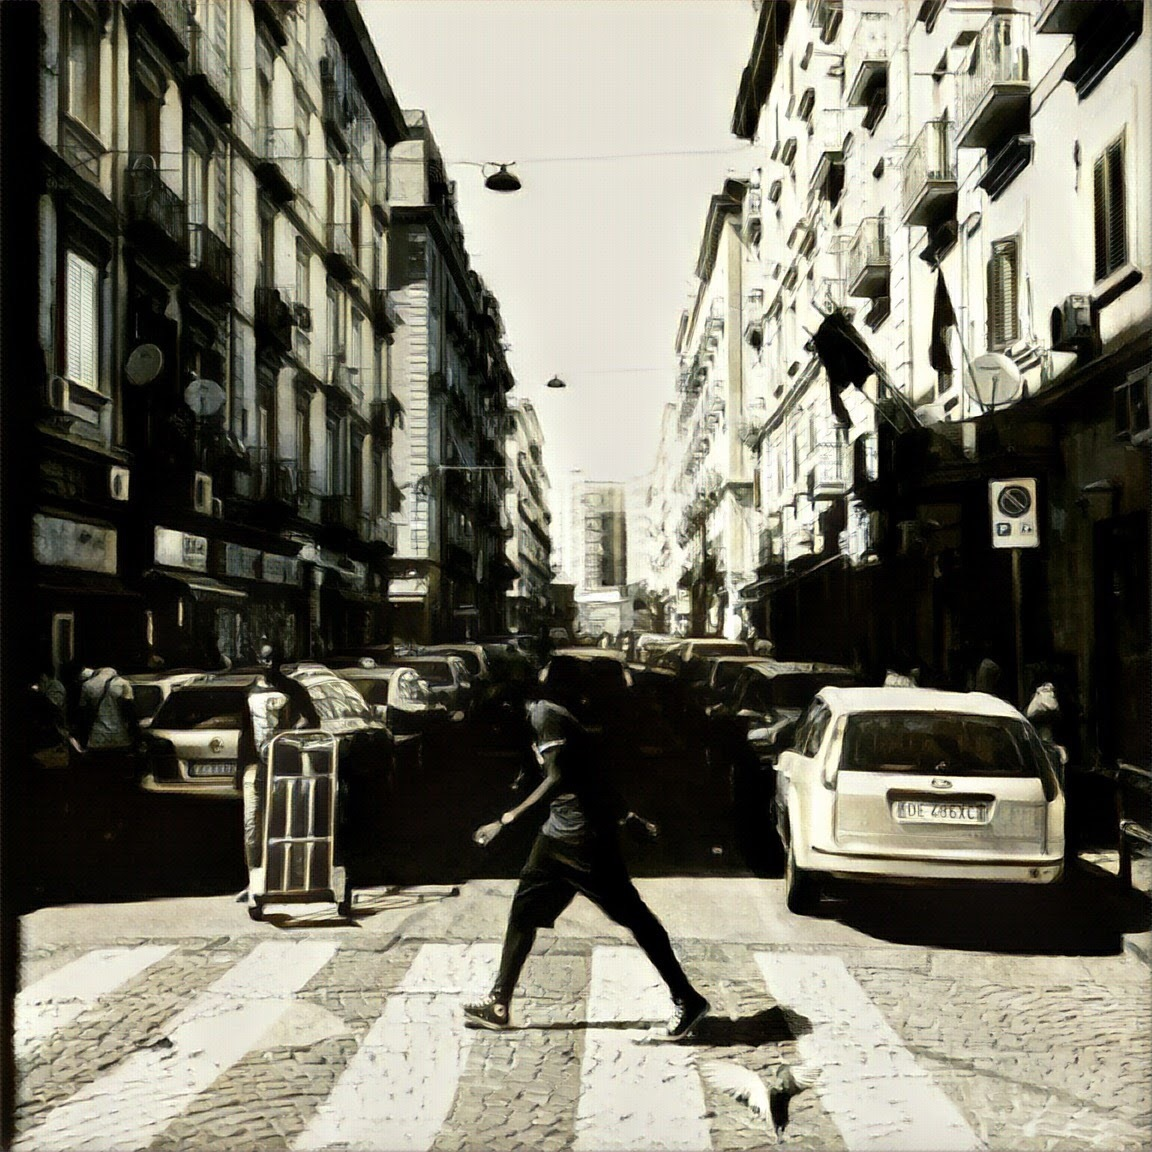 A Day in Napoli Naples Italy by Jean-Jacques Mouton